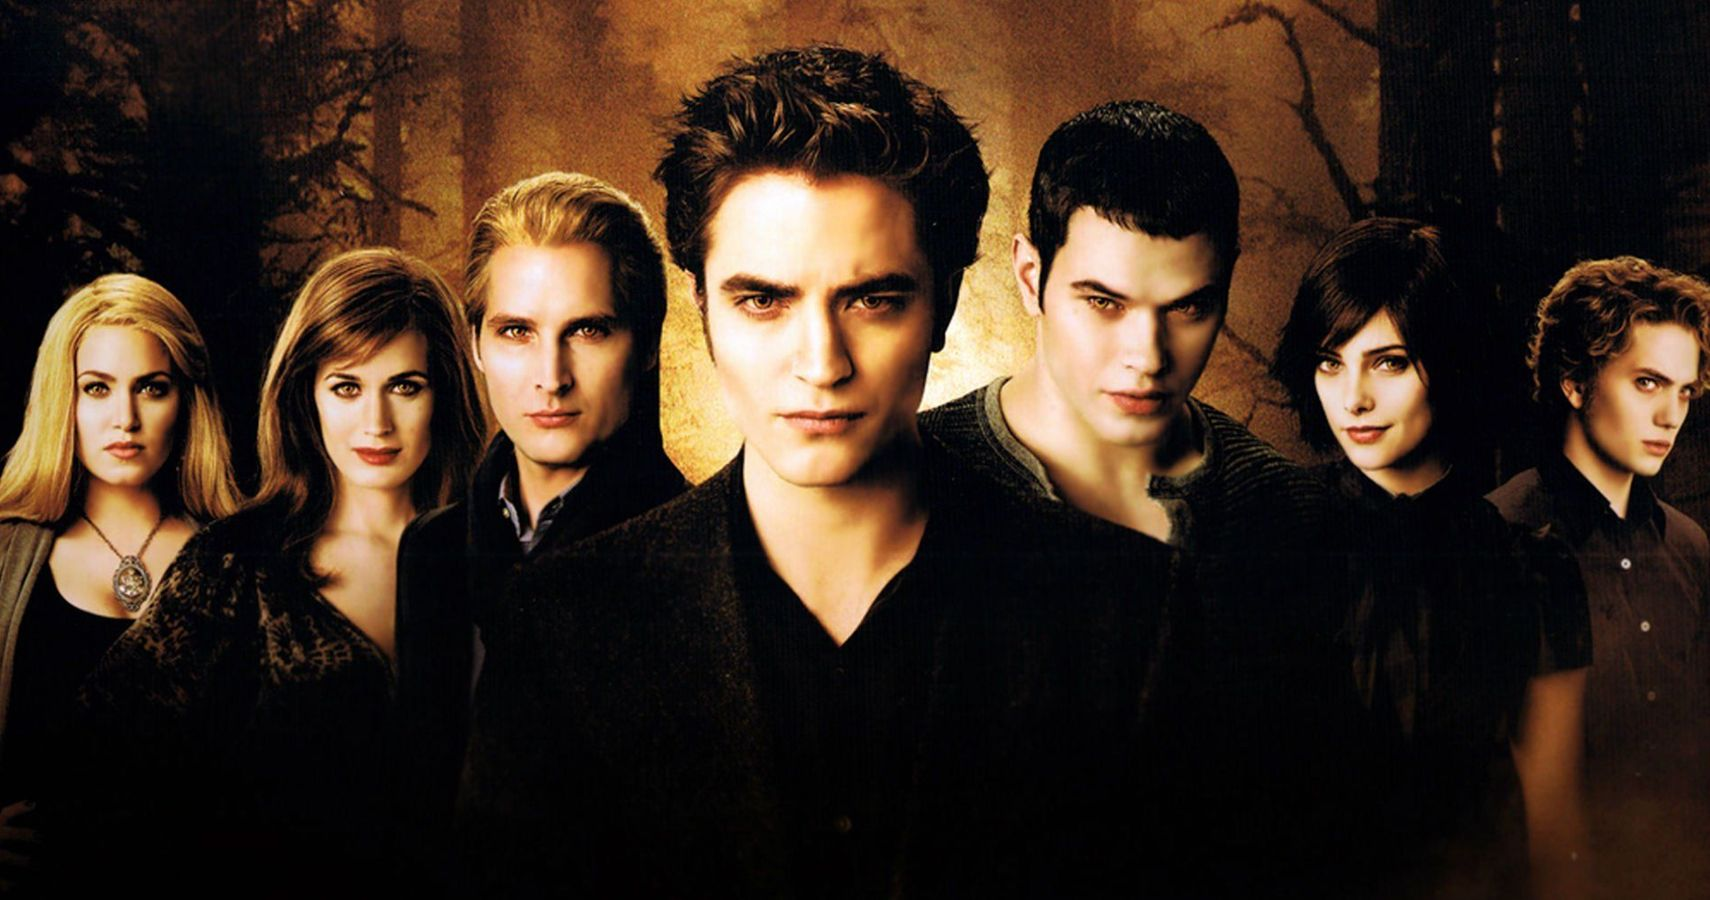 The 16 Most Powerful Vampires In Twilight, Ranked From Weakest To